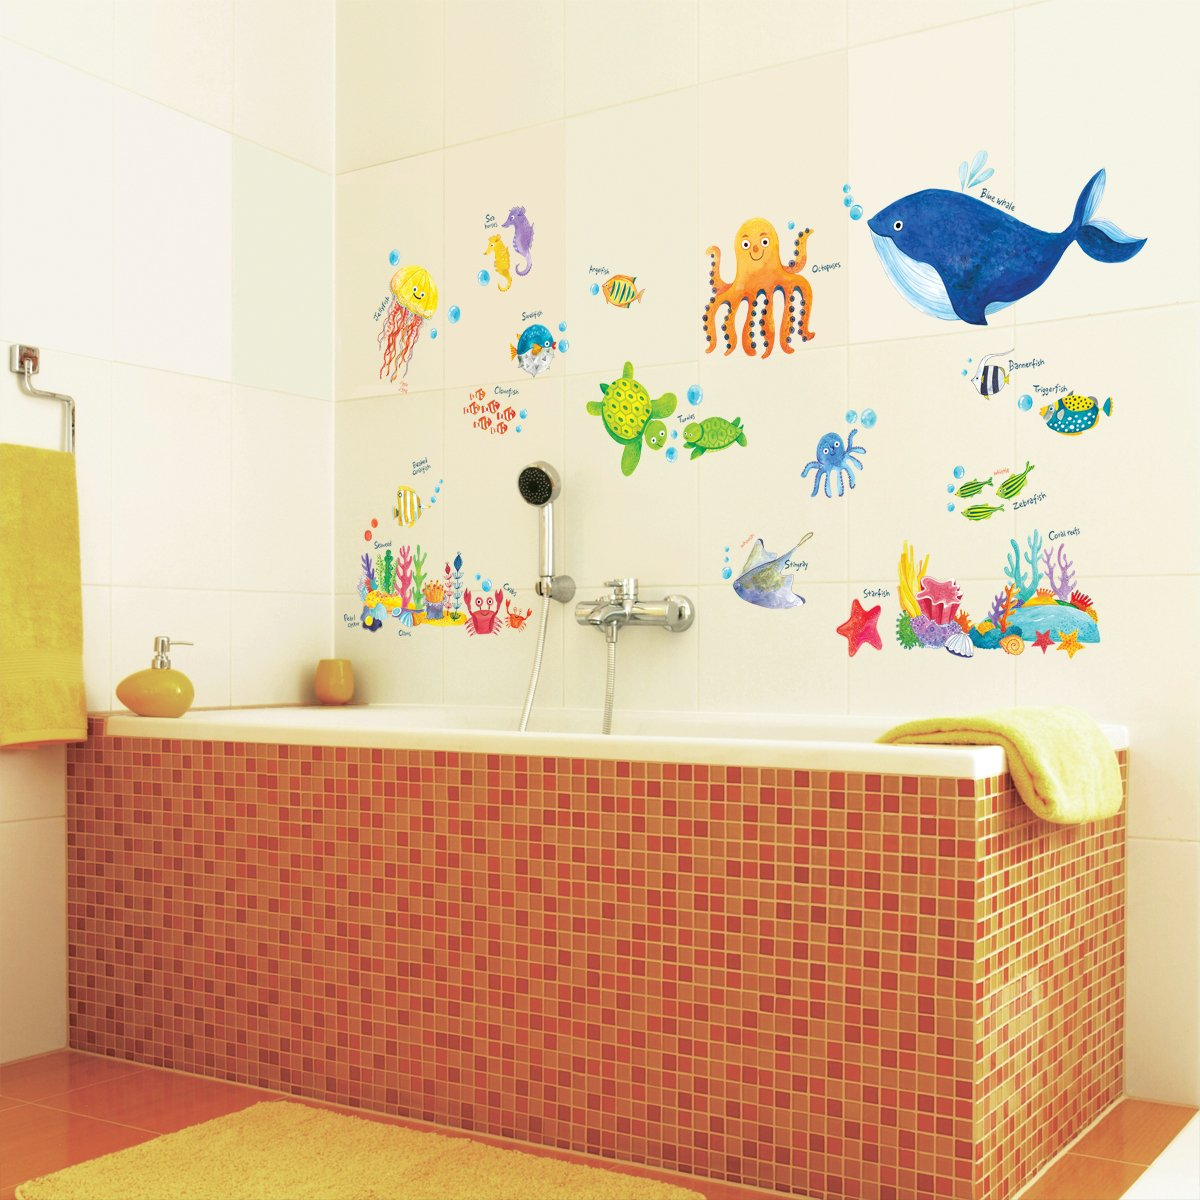 Decowall dw 1311 under the sea kids wall stickers wall decals peel decowall dw 1311 under the sea kids wall stickers wall decals peel and stick removable wall stickers for kids nursery bedroom living room amazon amipublicfo Gallery